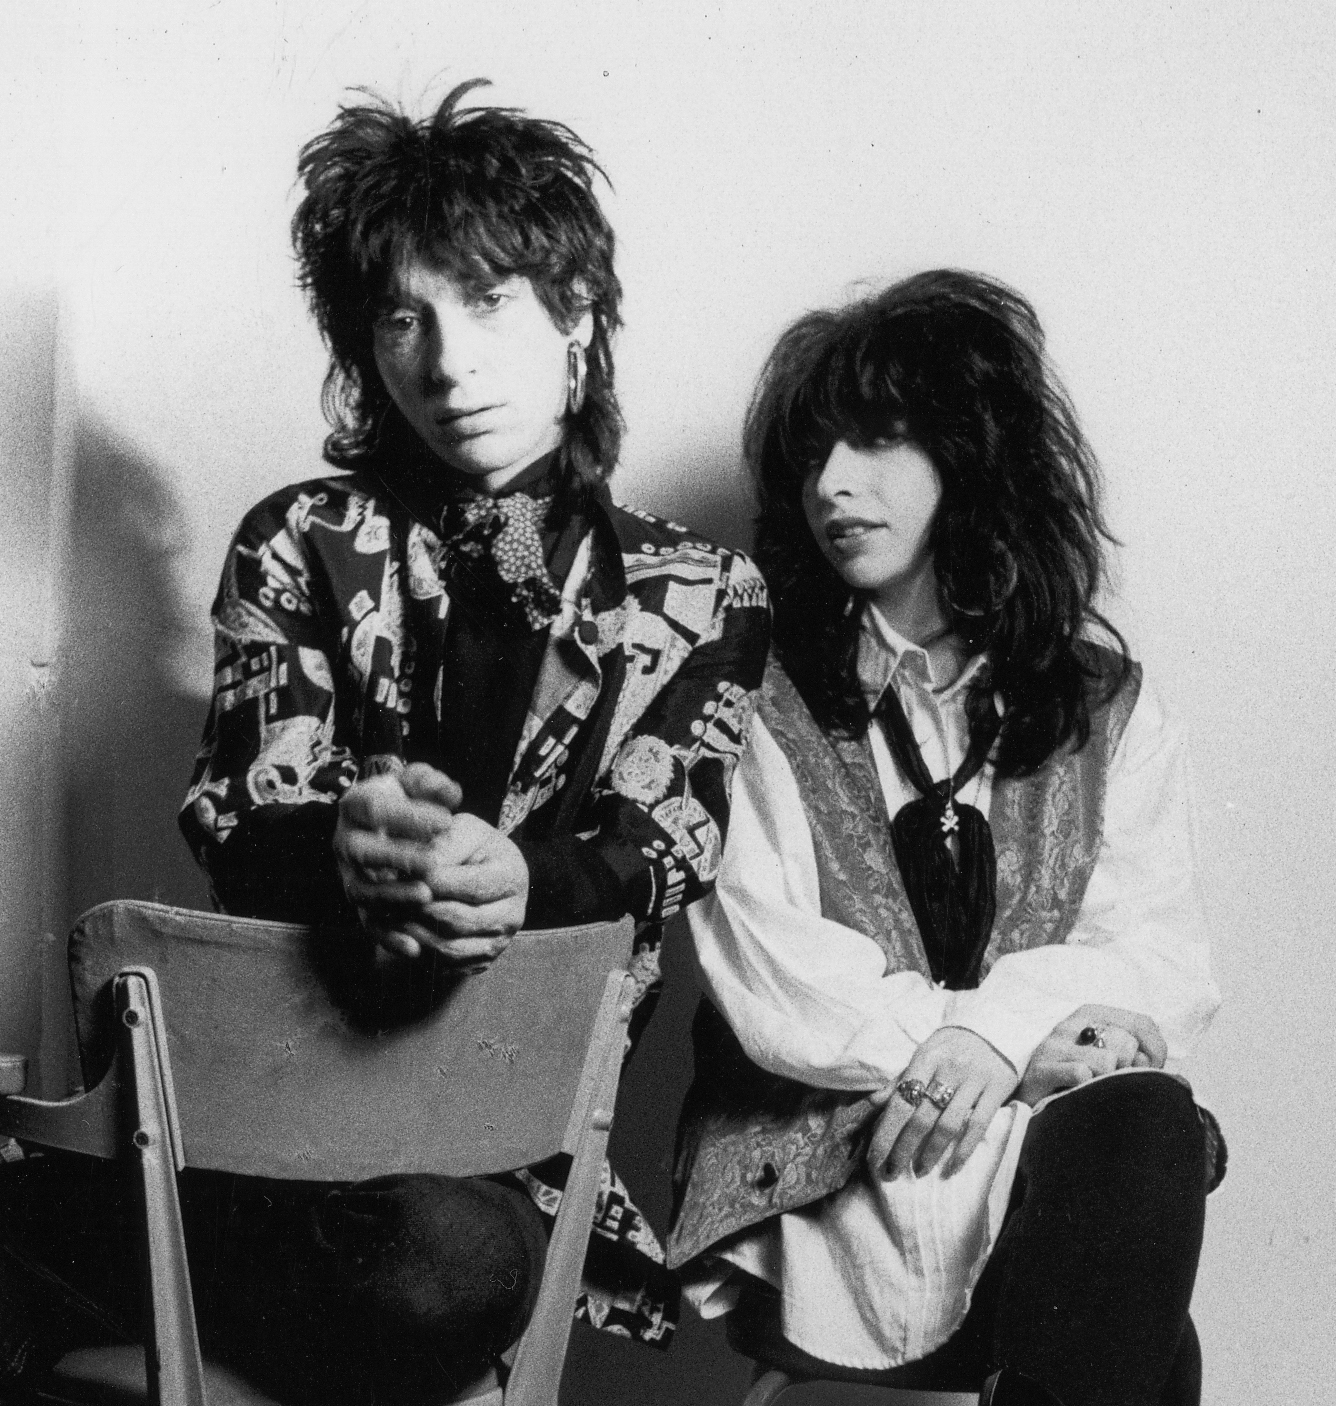 Johnny-Thunders-Nina-Antonia-seated-crop_cr.jpg